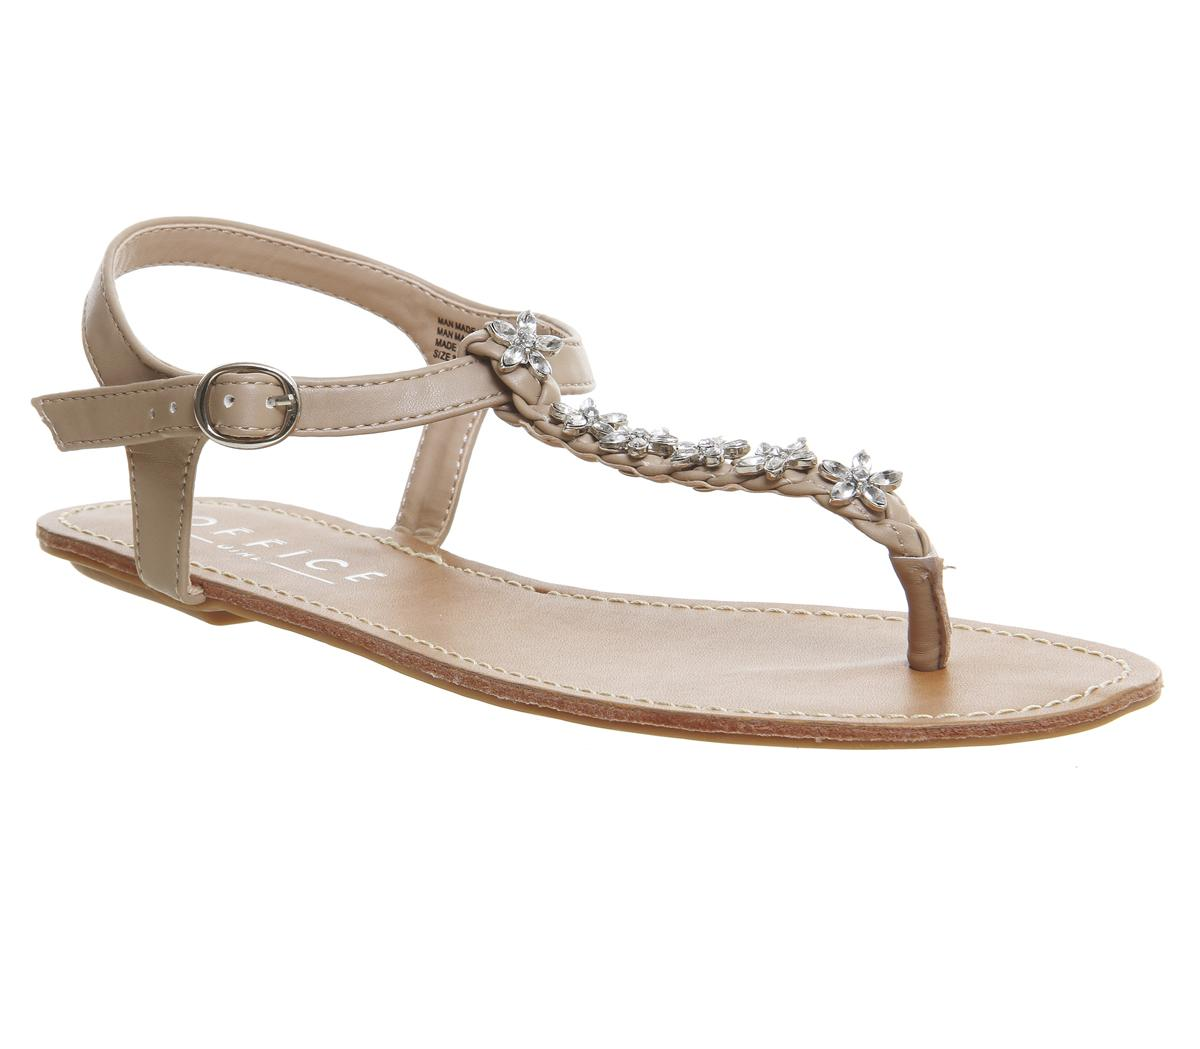 Sweetie Pie Embellished Sandals